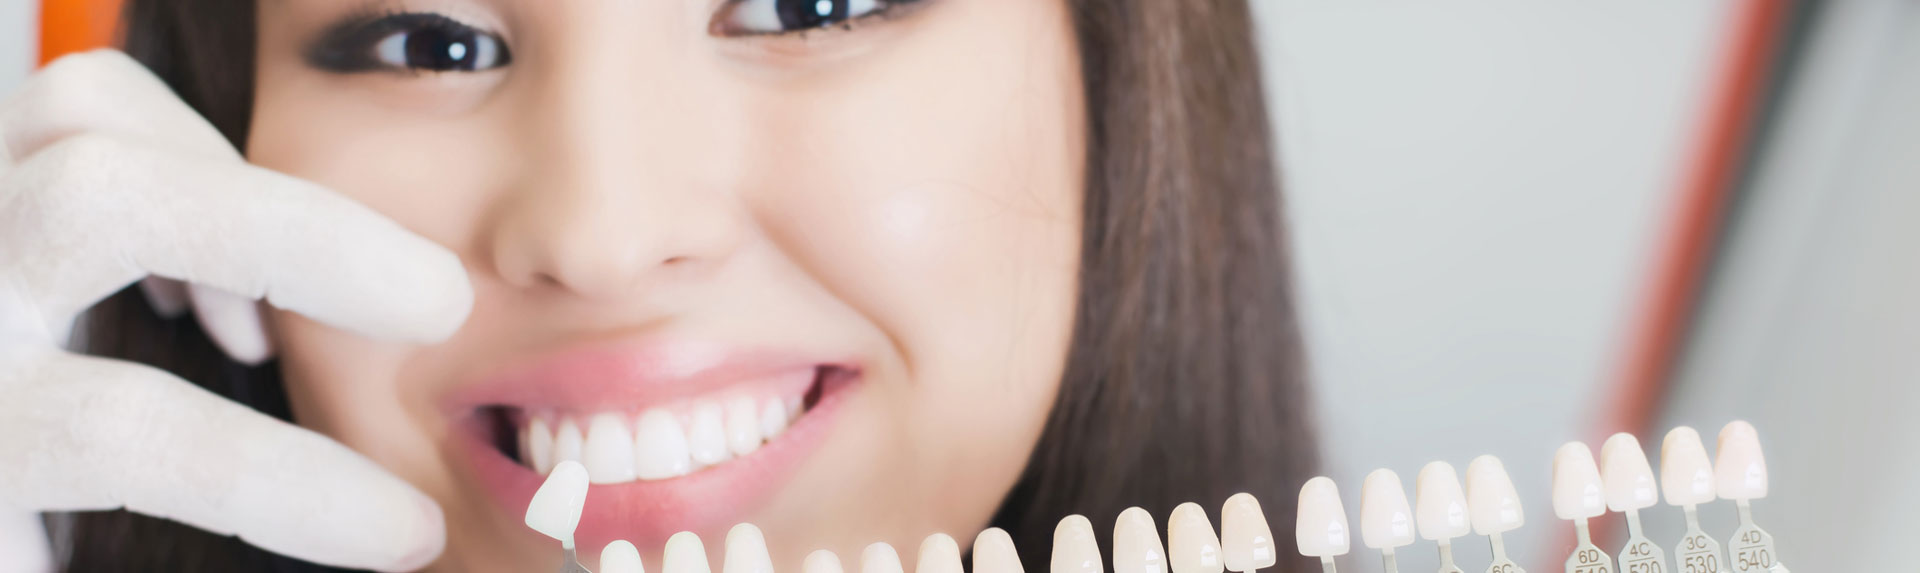 Smiling woman checking her teeth color